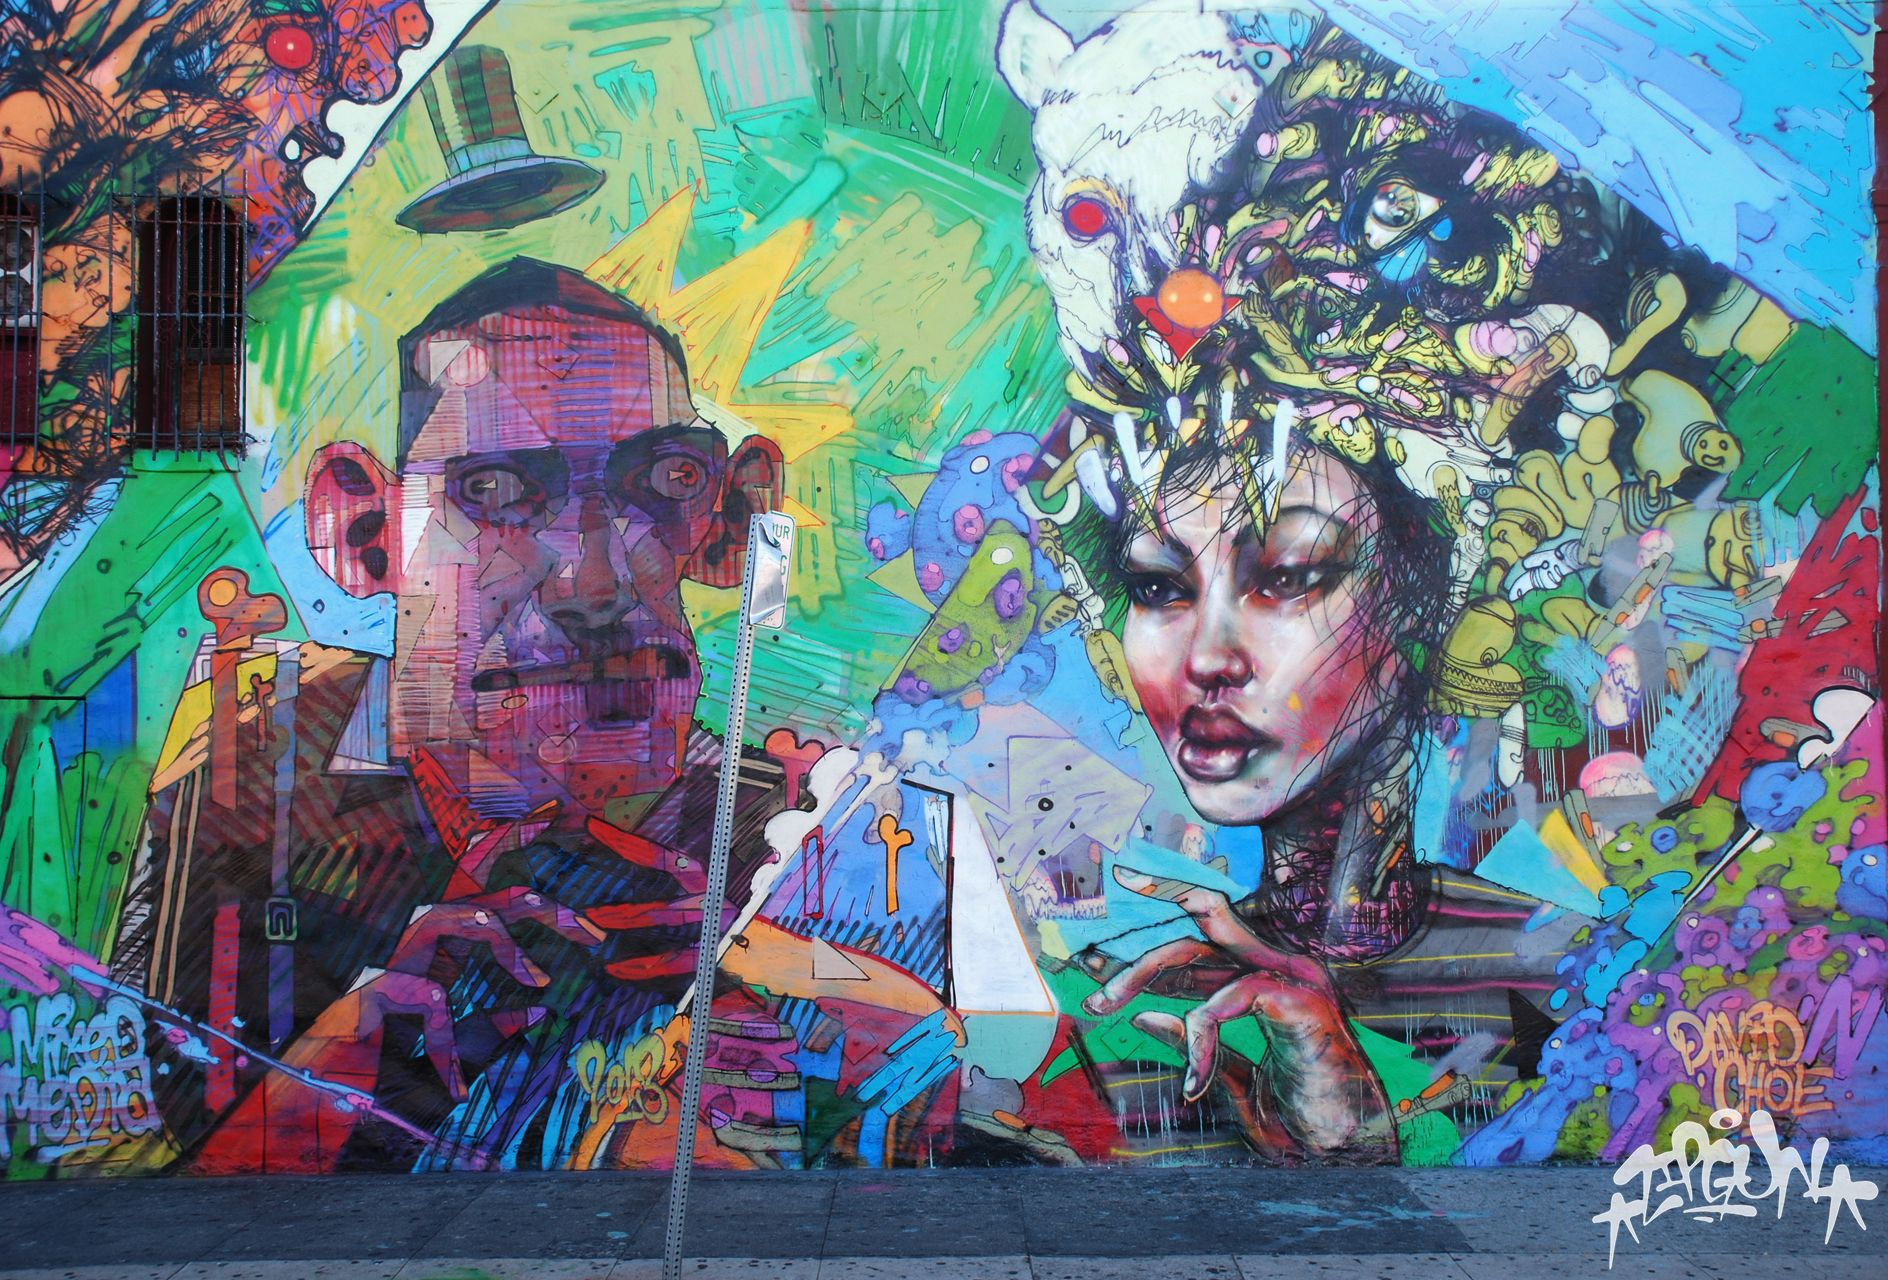 David choe graffiti artist best street art outdoor art street artists murals